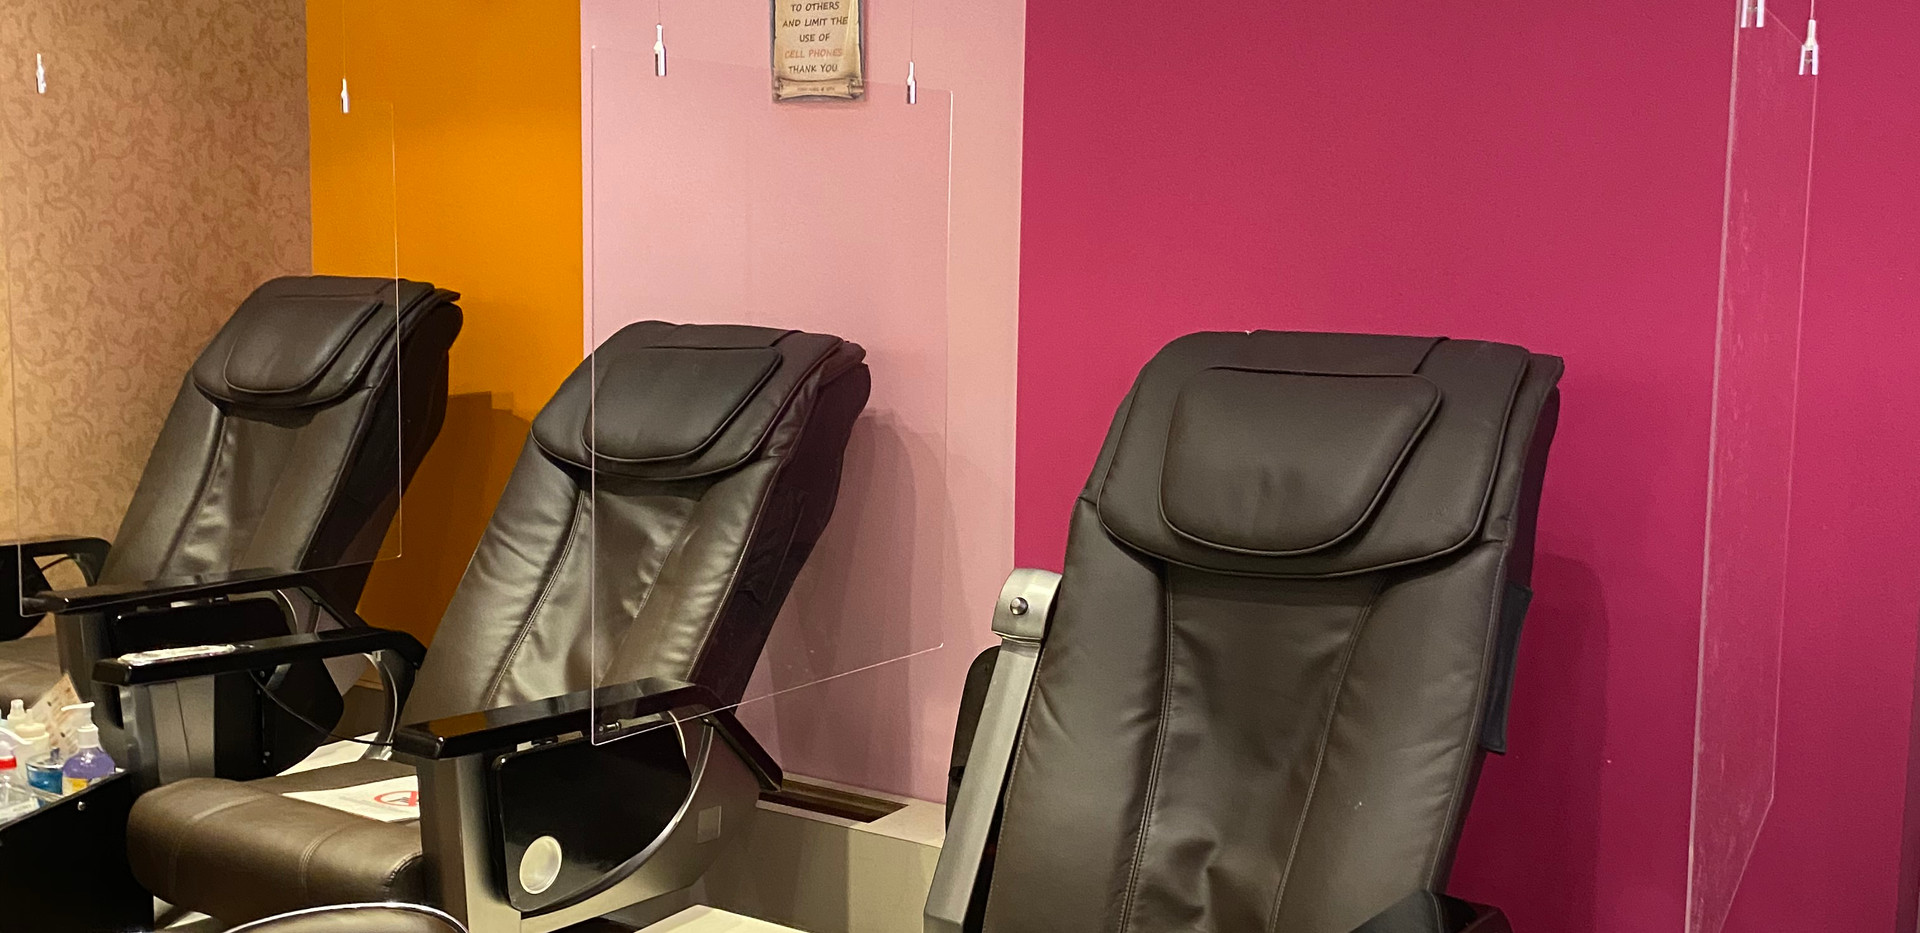 Partitions for Pedicure Chairs